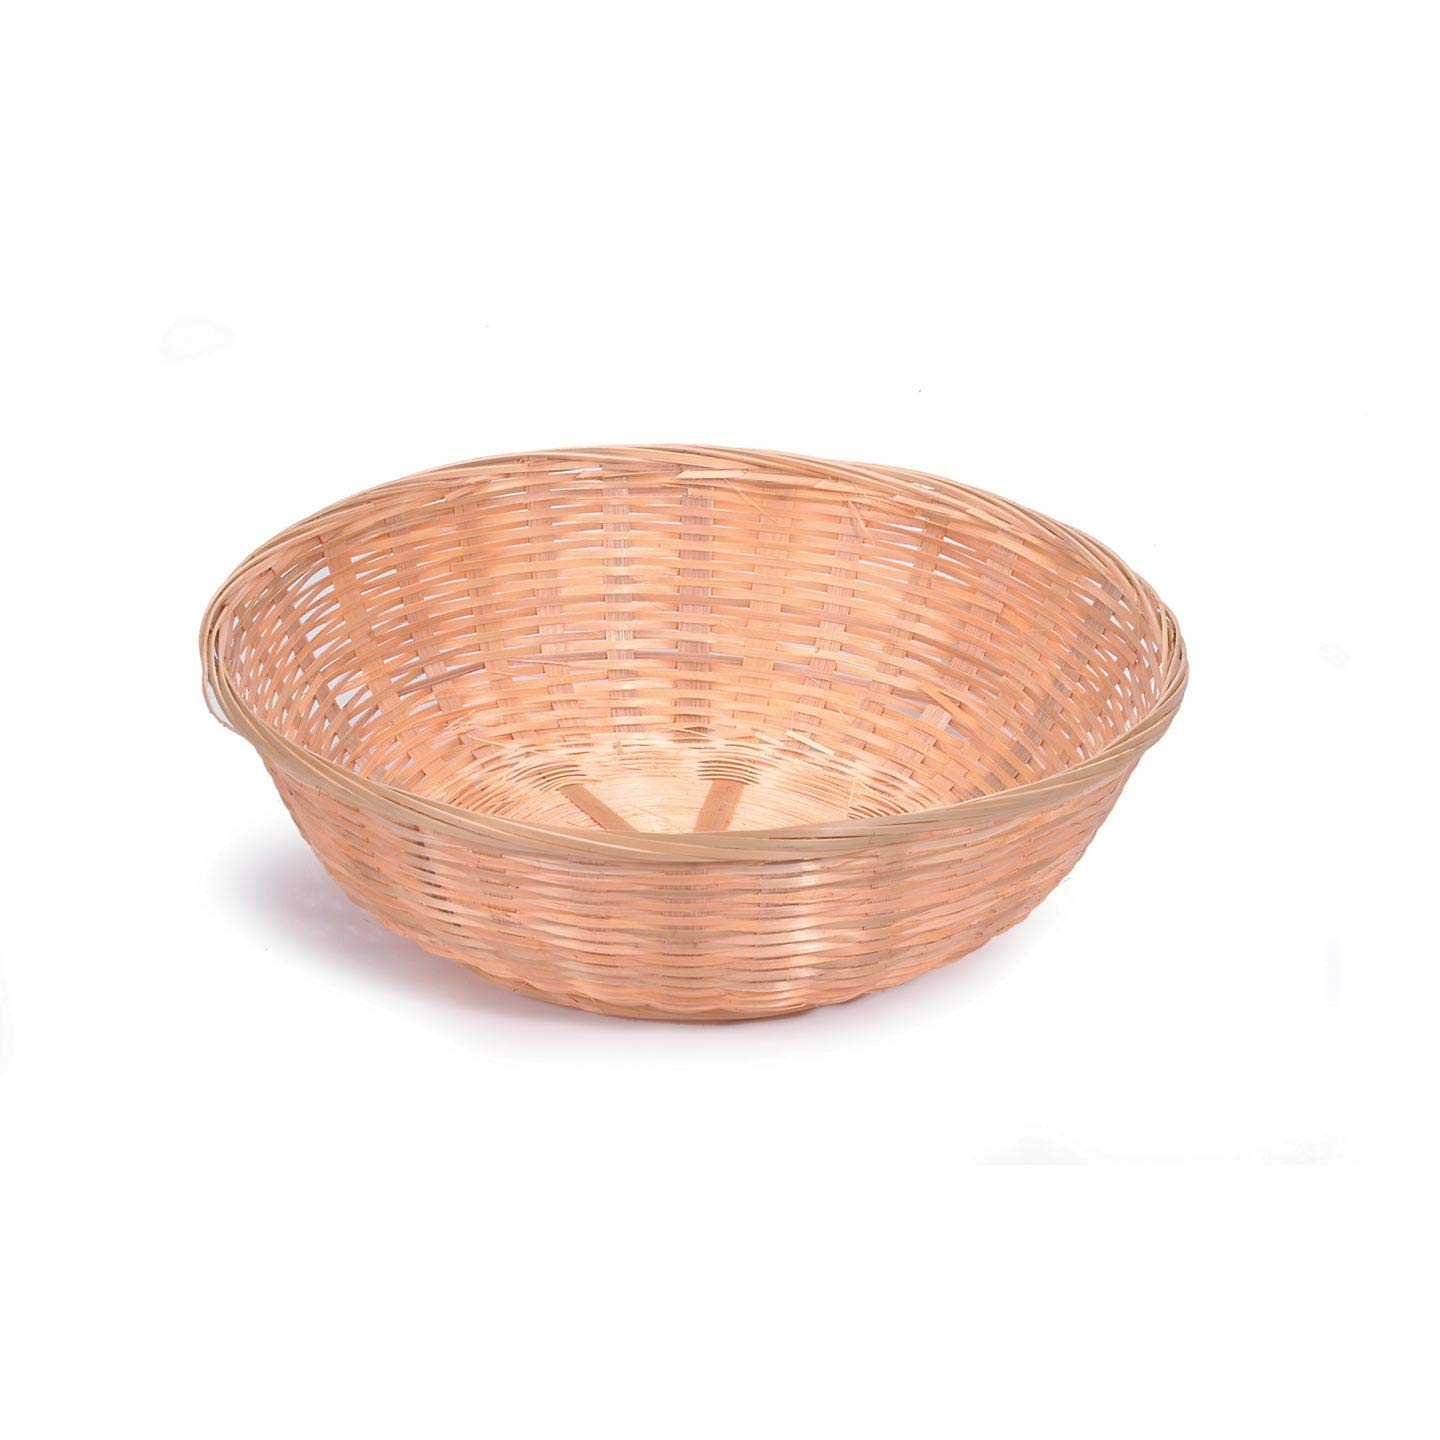 Bulk Buy: Darice DIY Crafts Bamboo Bread Basket Round 12 x 3.5 inches (12-Pack) 2858-54 Inc.